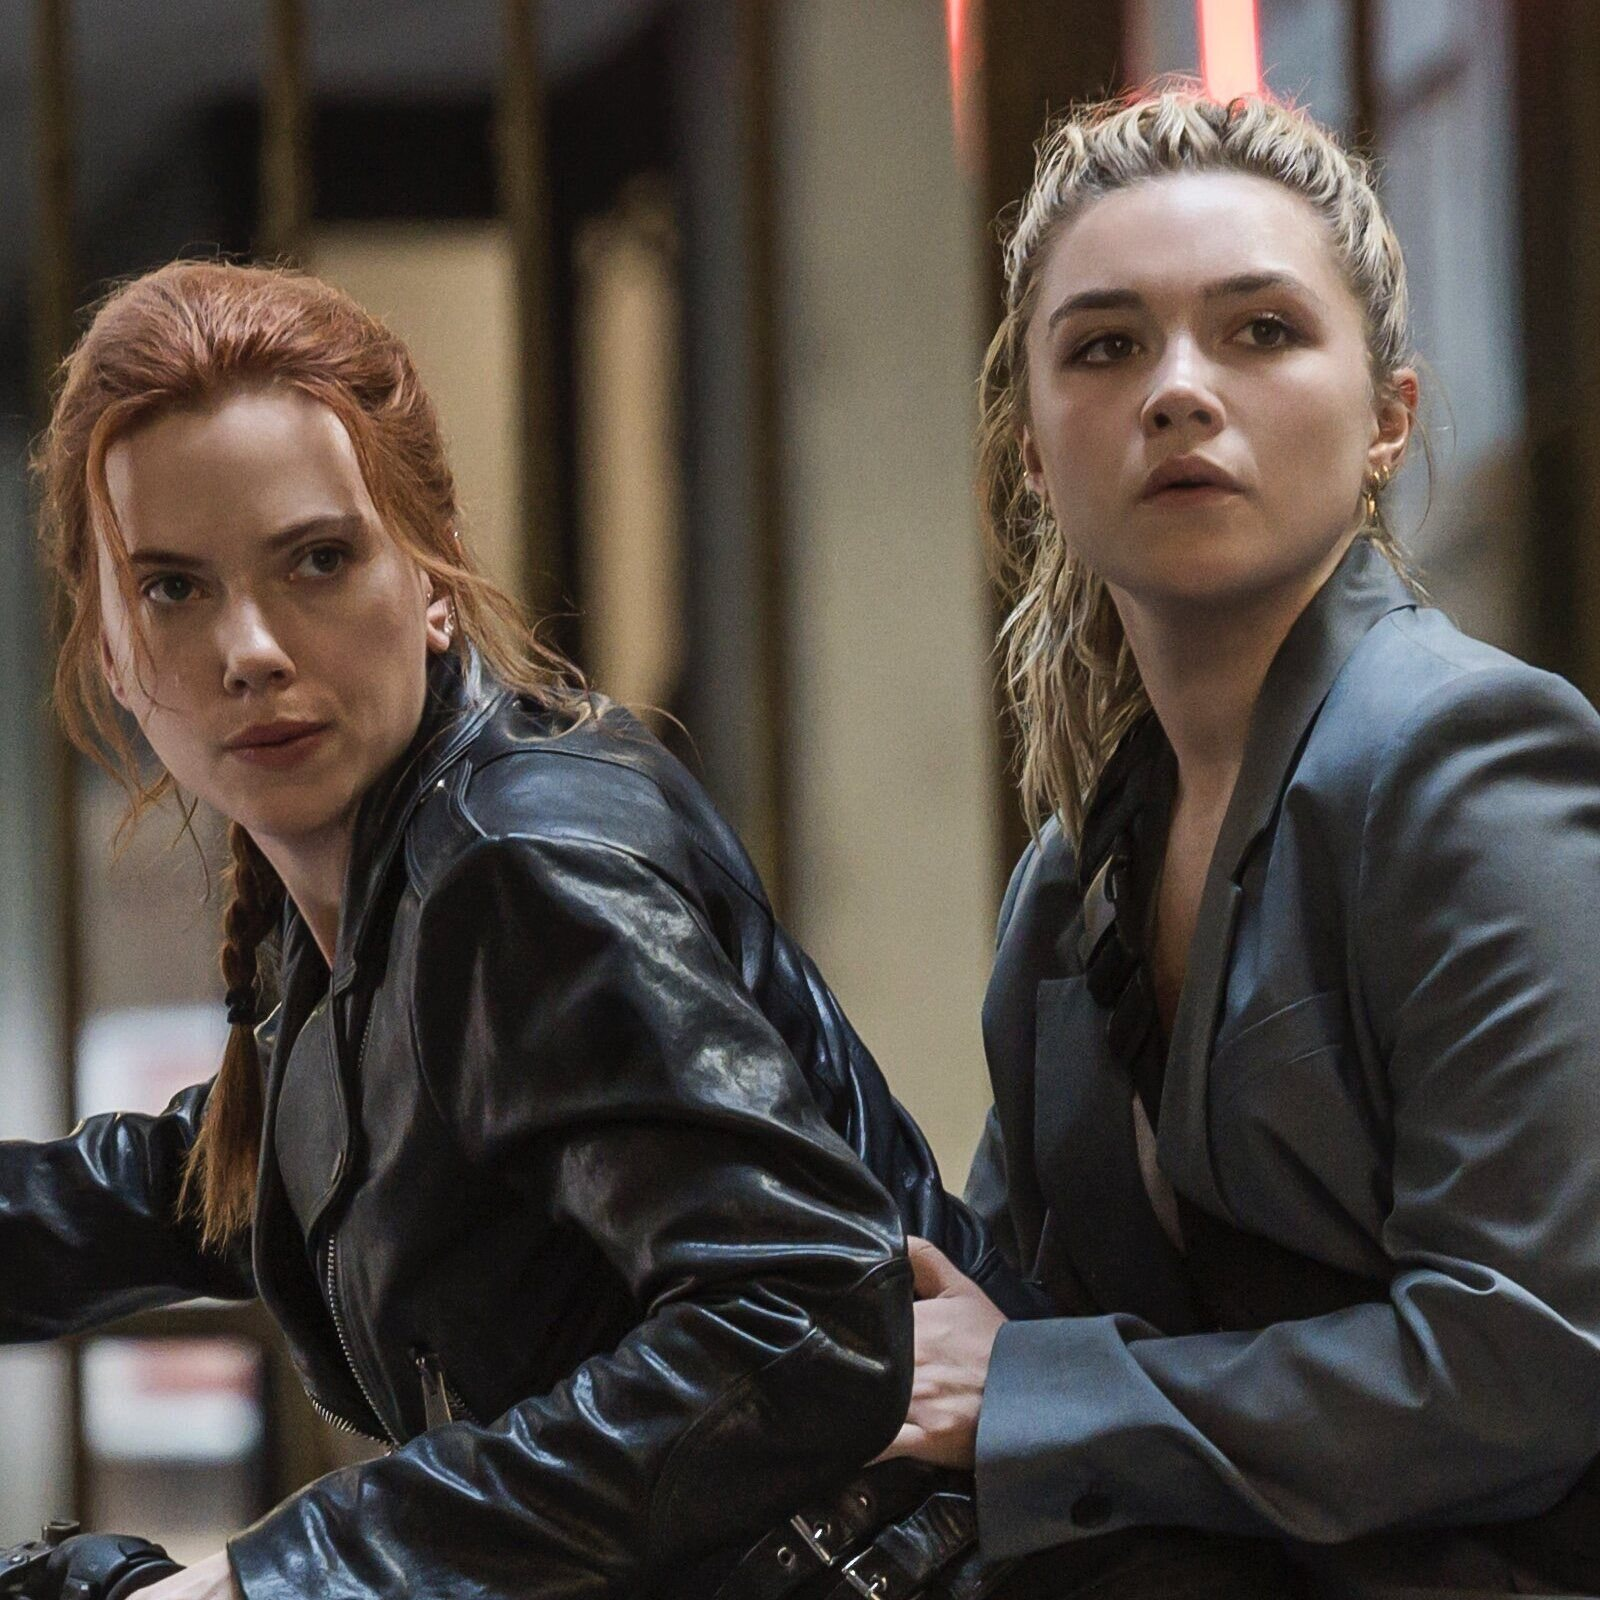 Florence Pugh nominated for an Oscar for 'Black Widow'?